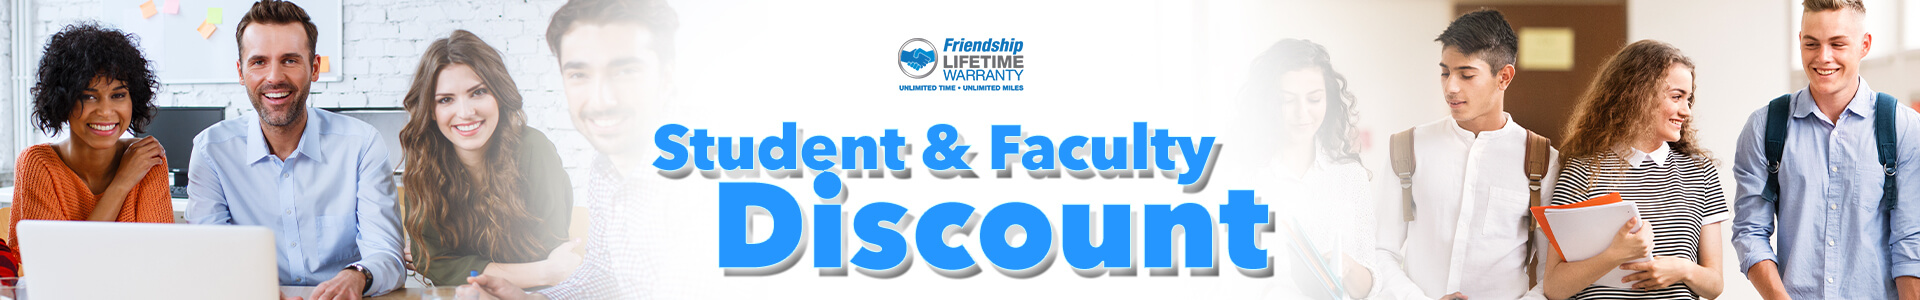 Students and Faculty Discount